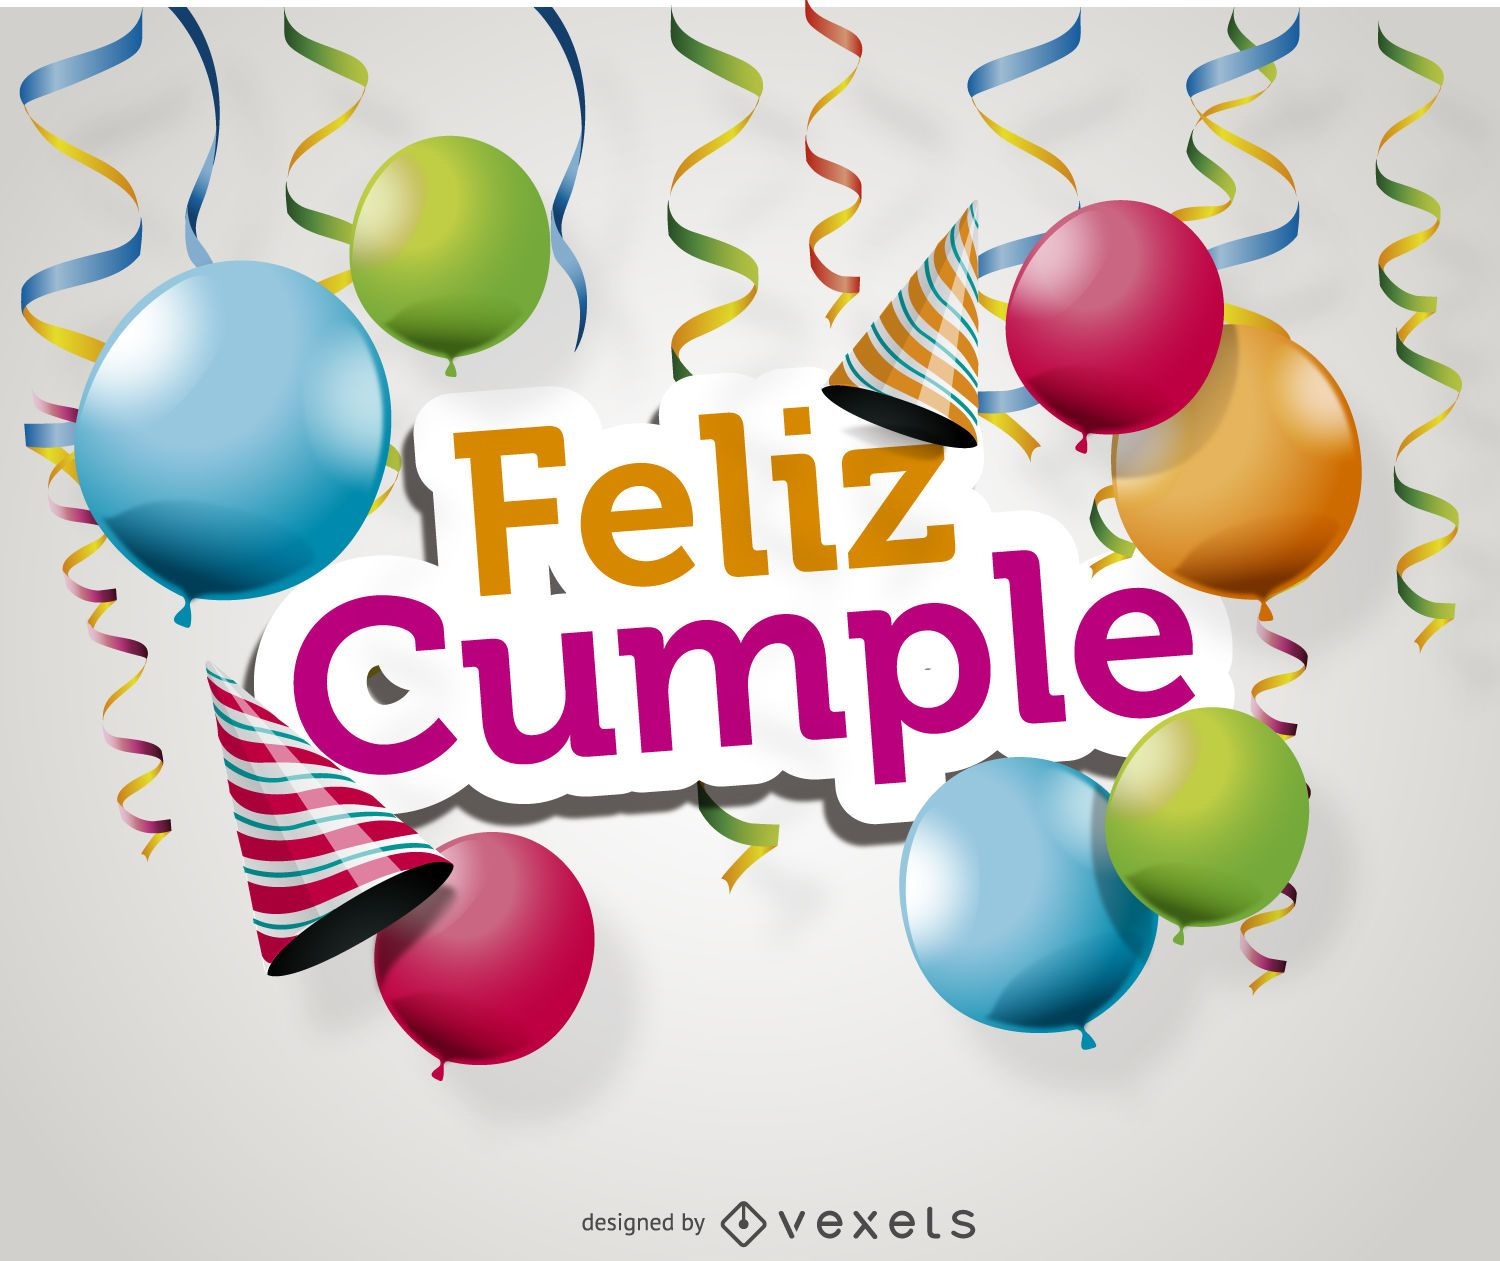 Feliz cumple card - Vector download